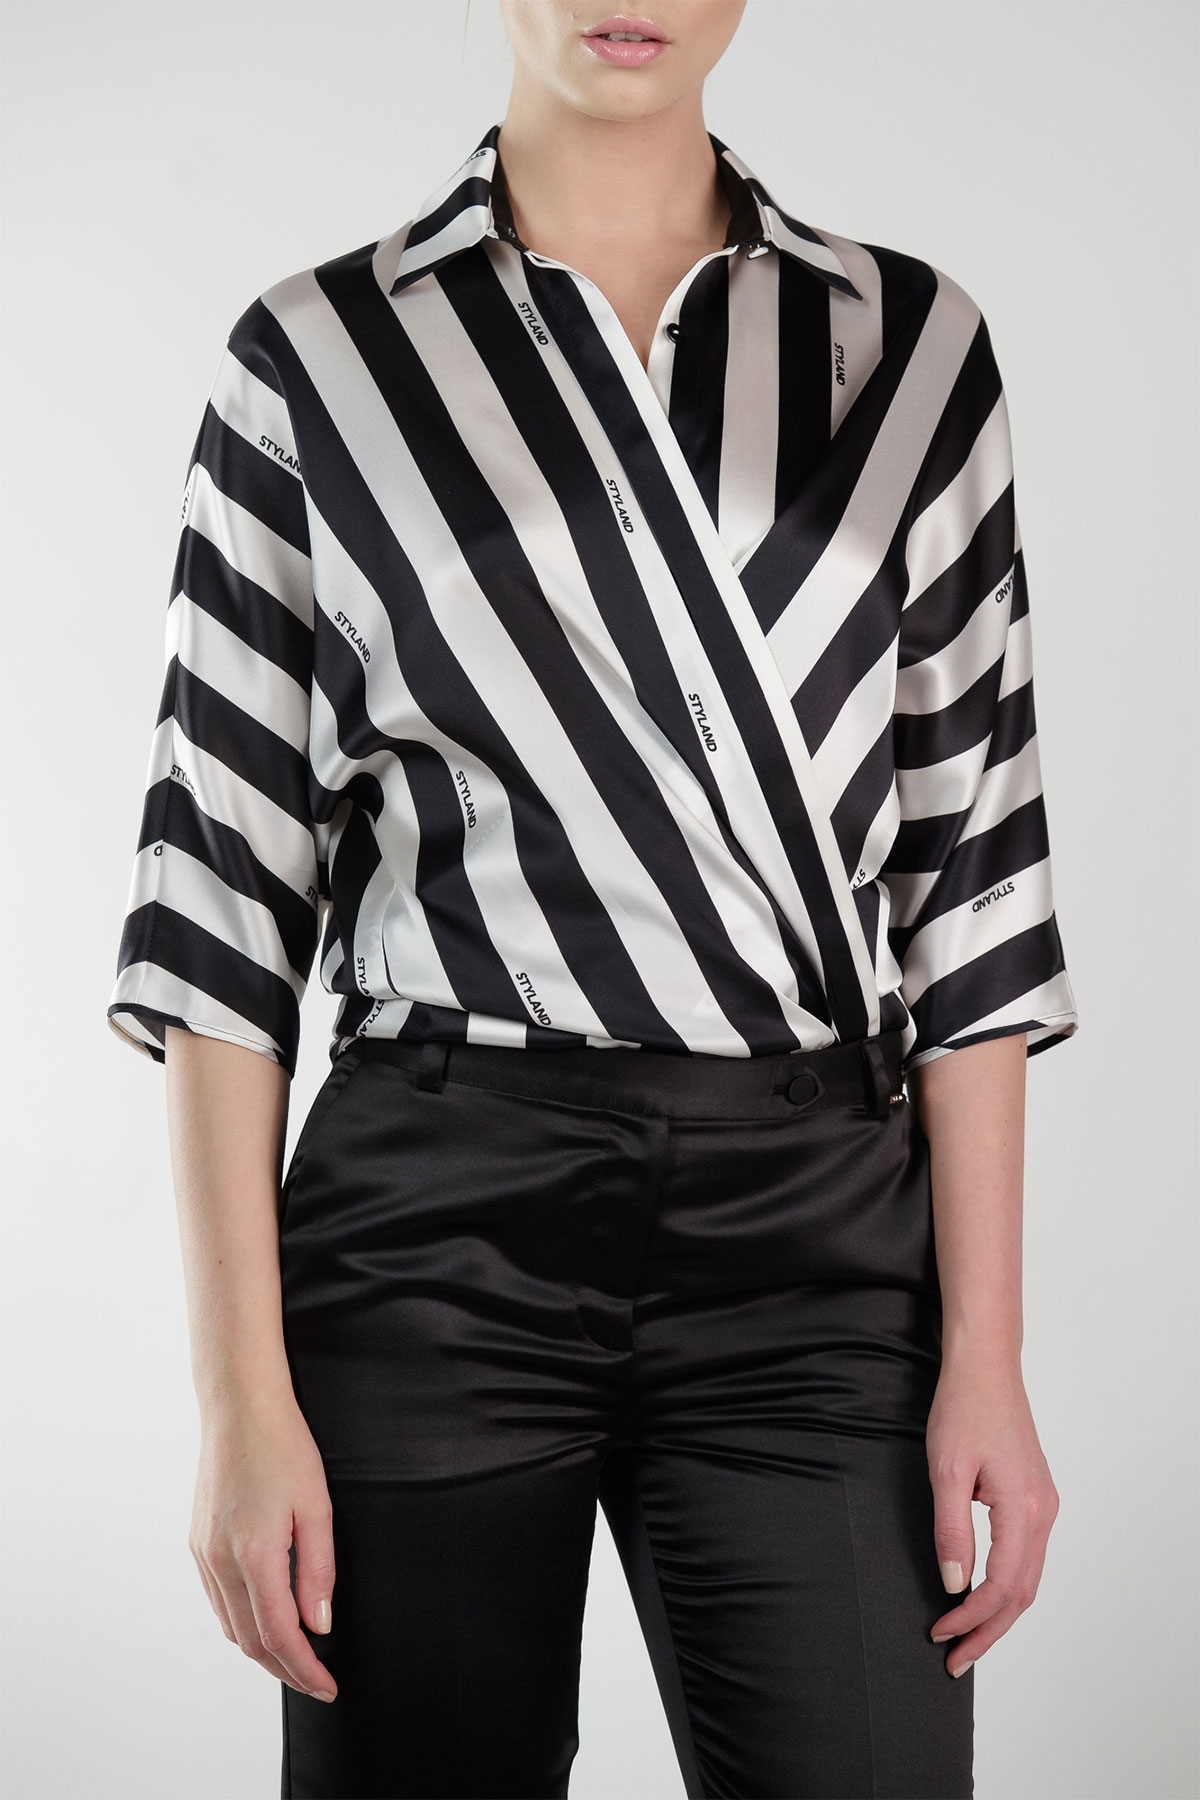 BOLD BLACK AND WHITE STRIPES SILK SHIRT WITH LOGO